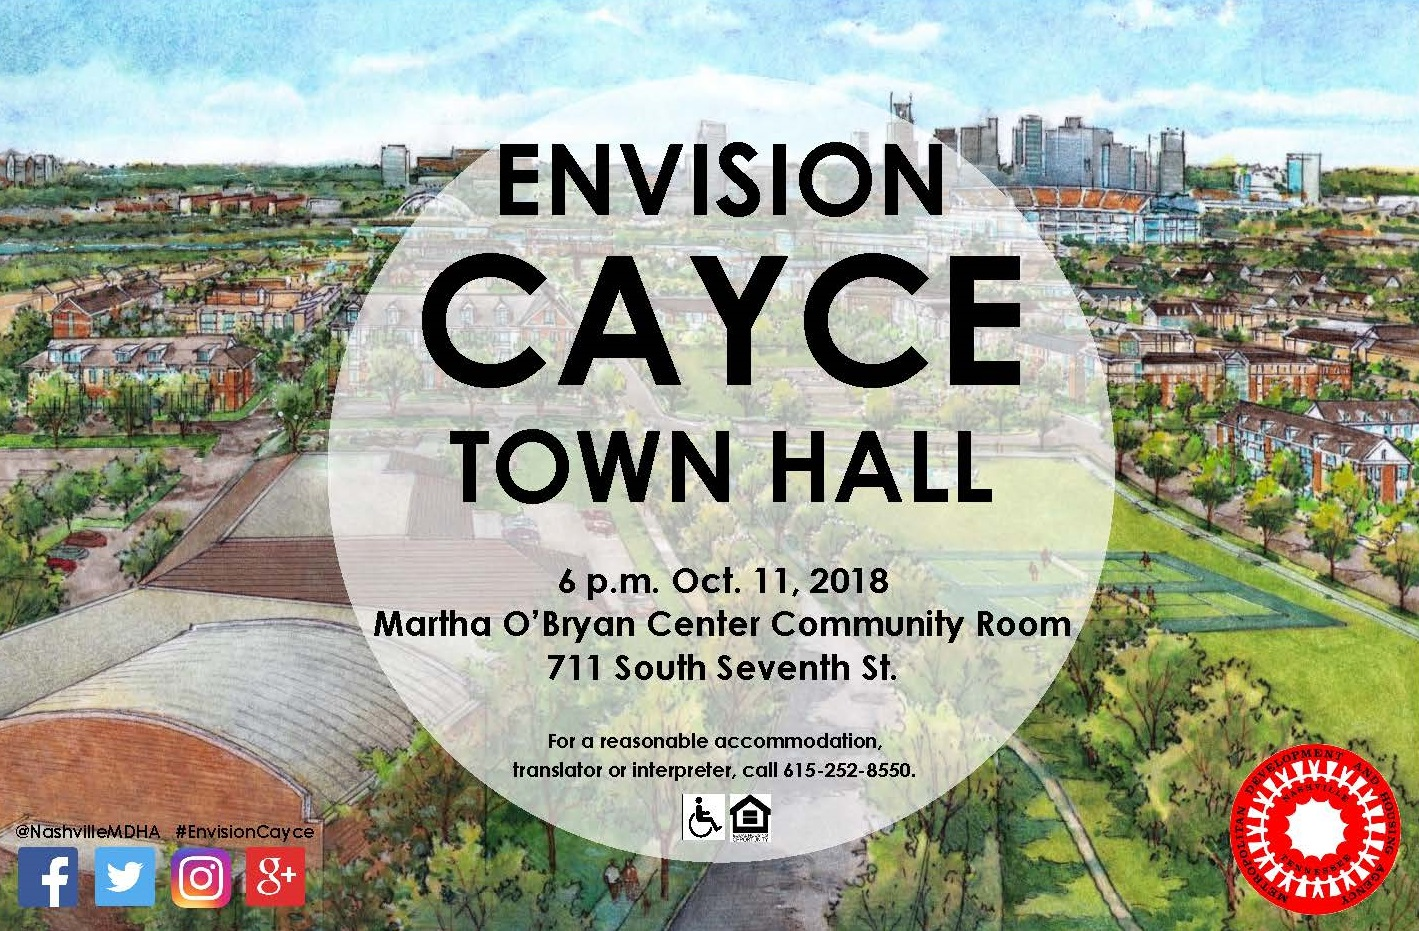 envision-cayce-townhall-10112018-cropped